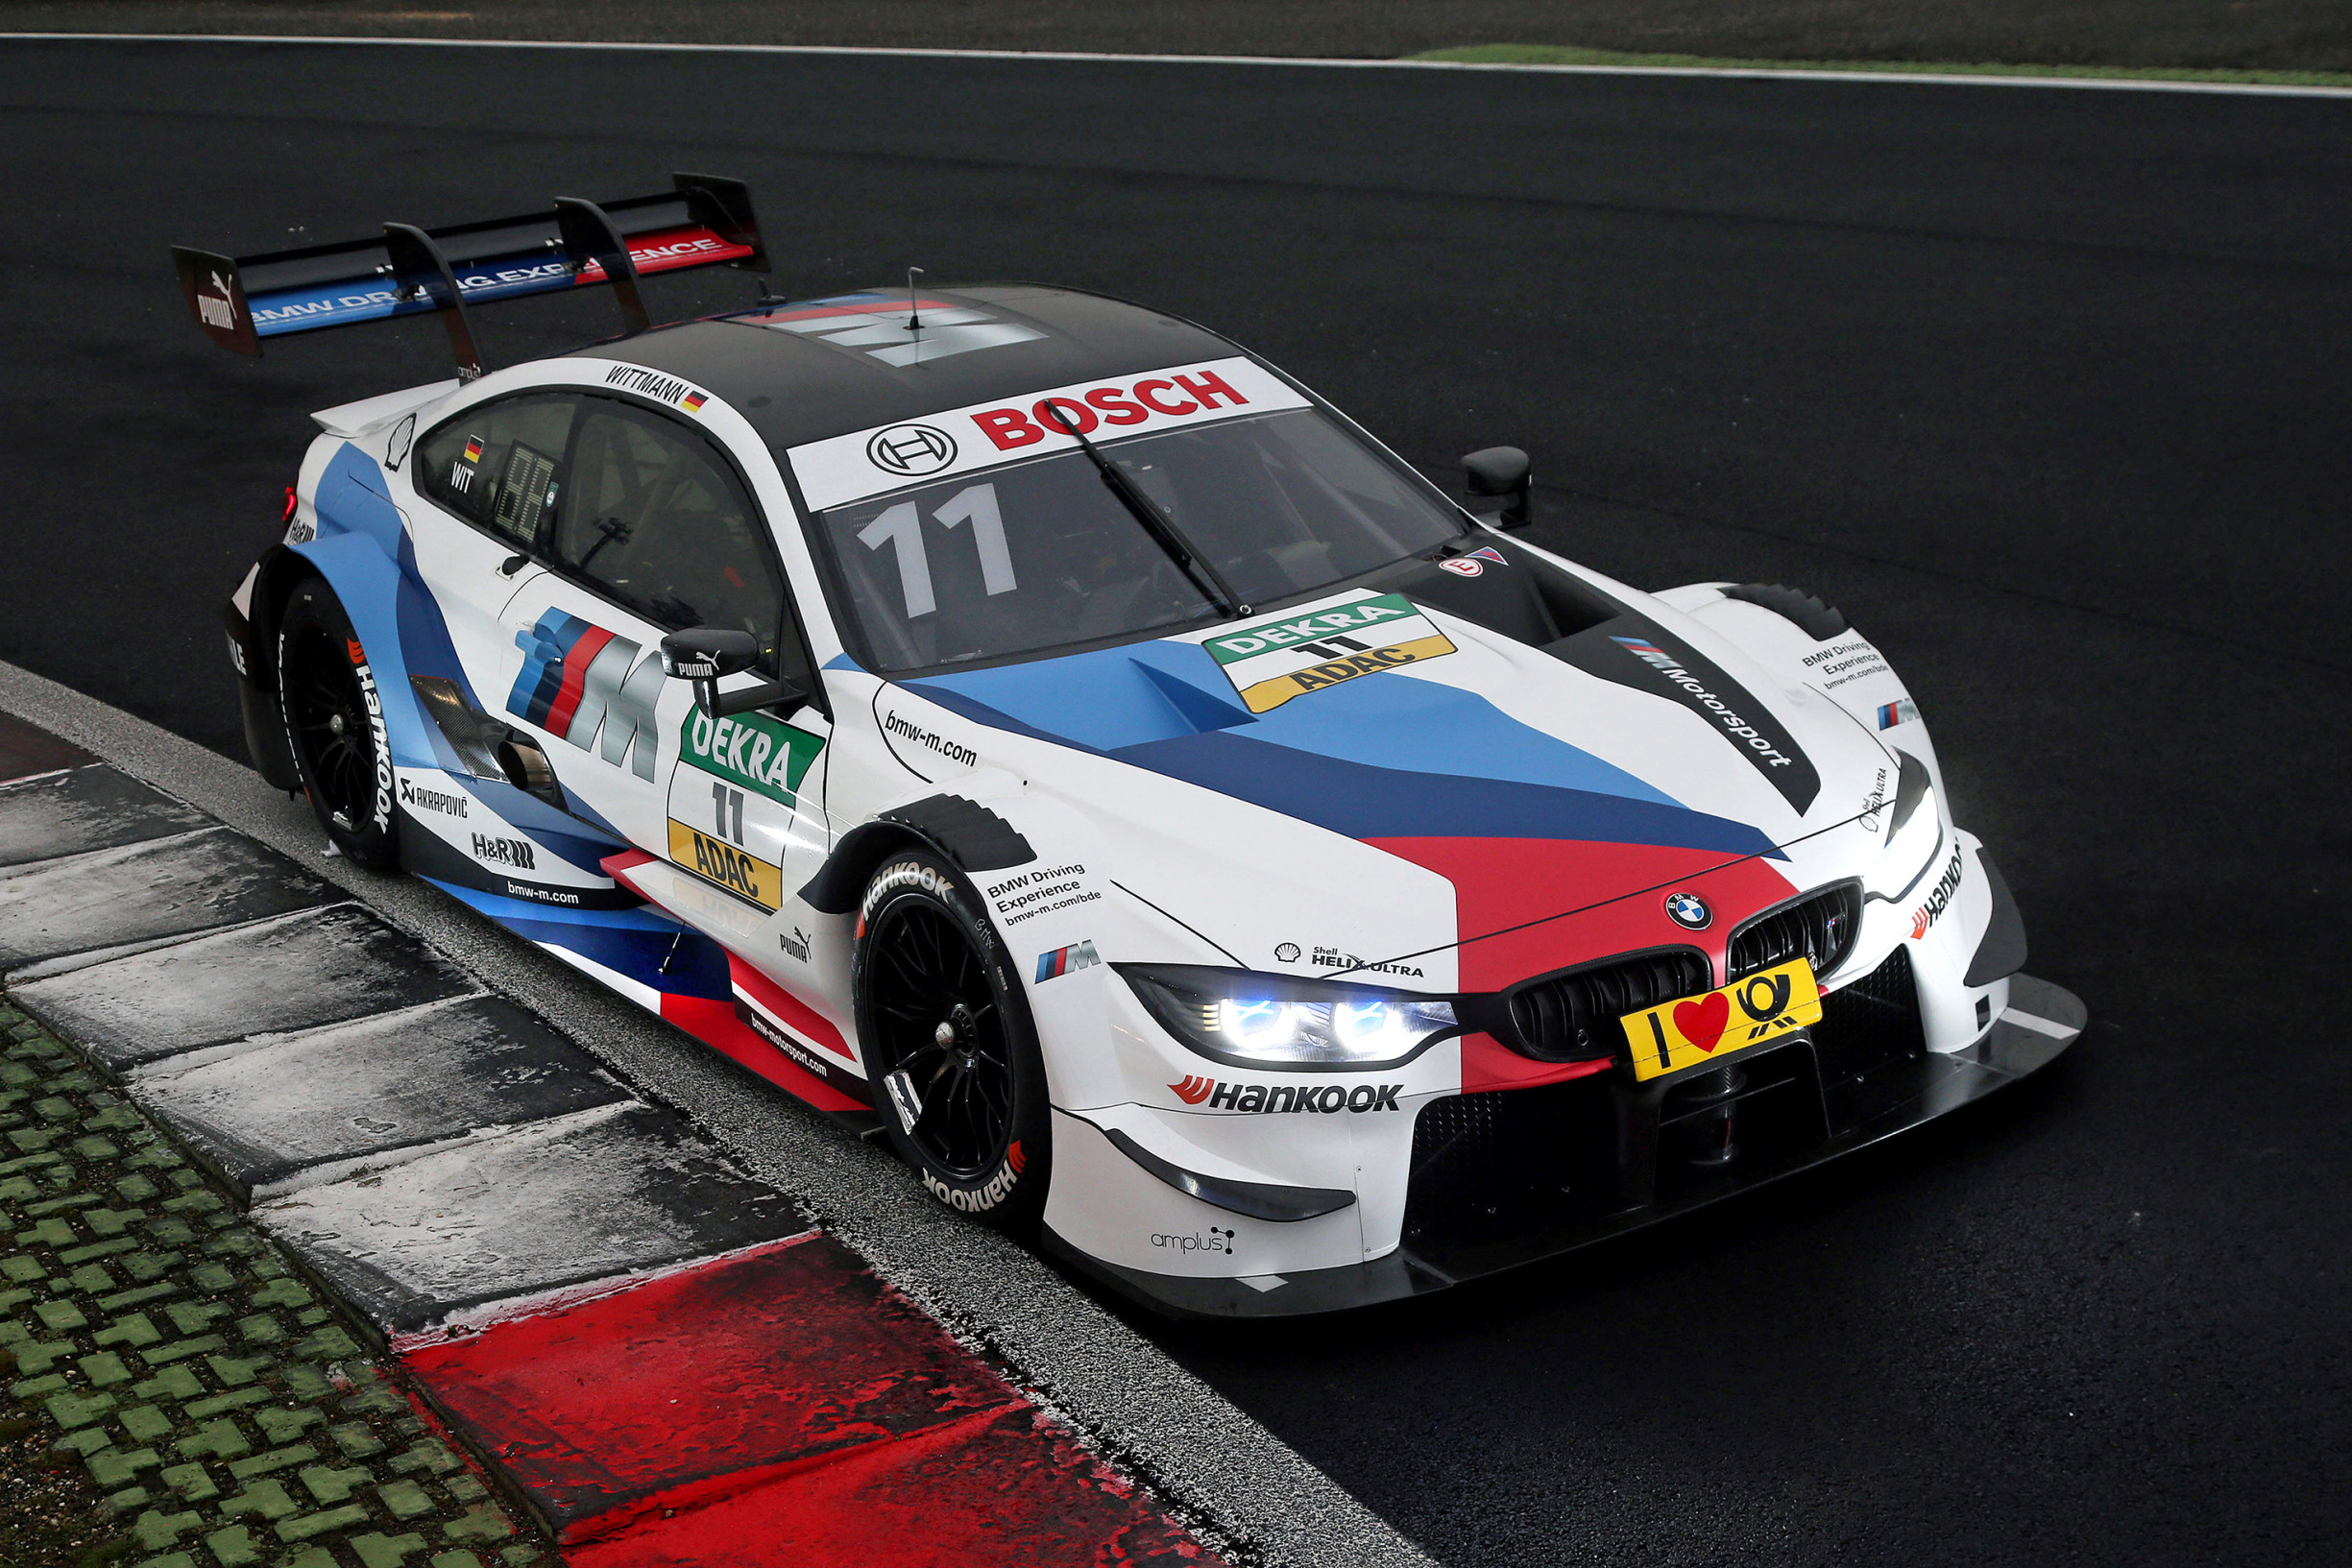 Bmw Reveal First 2018 Livery For Marco Wittmann